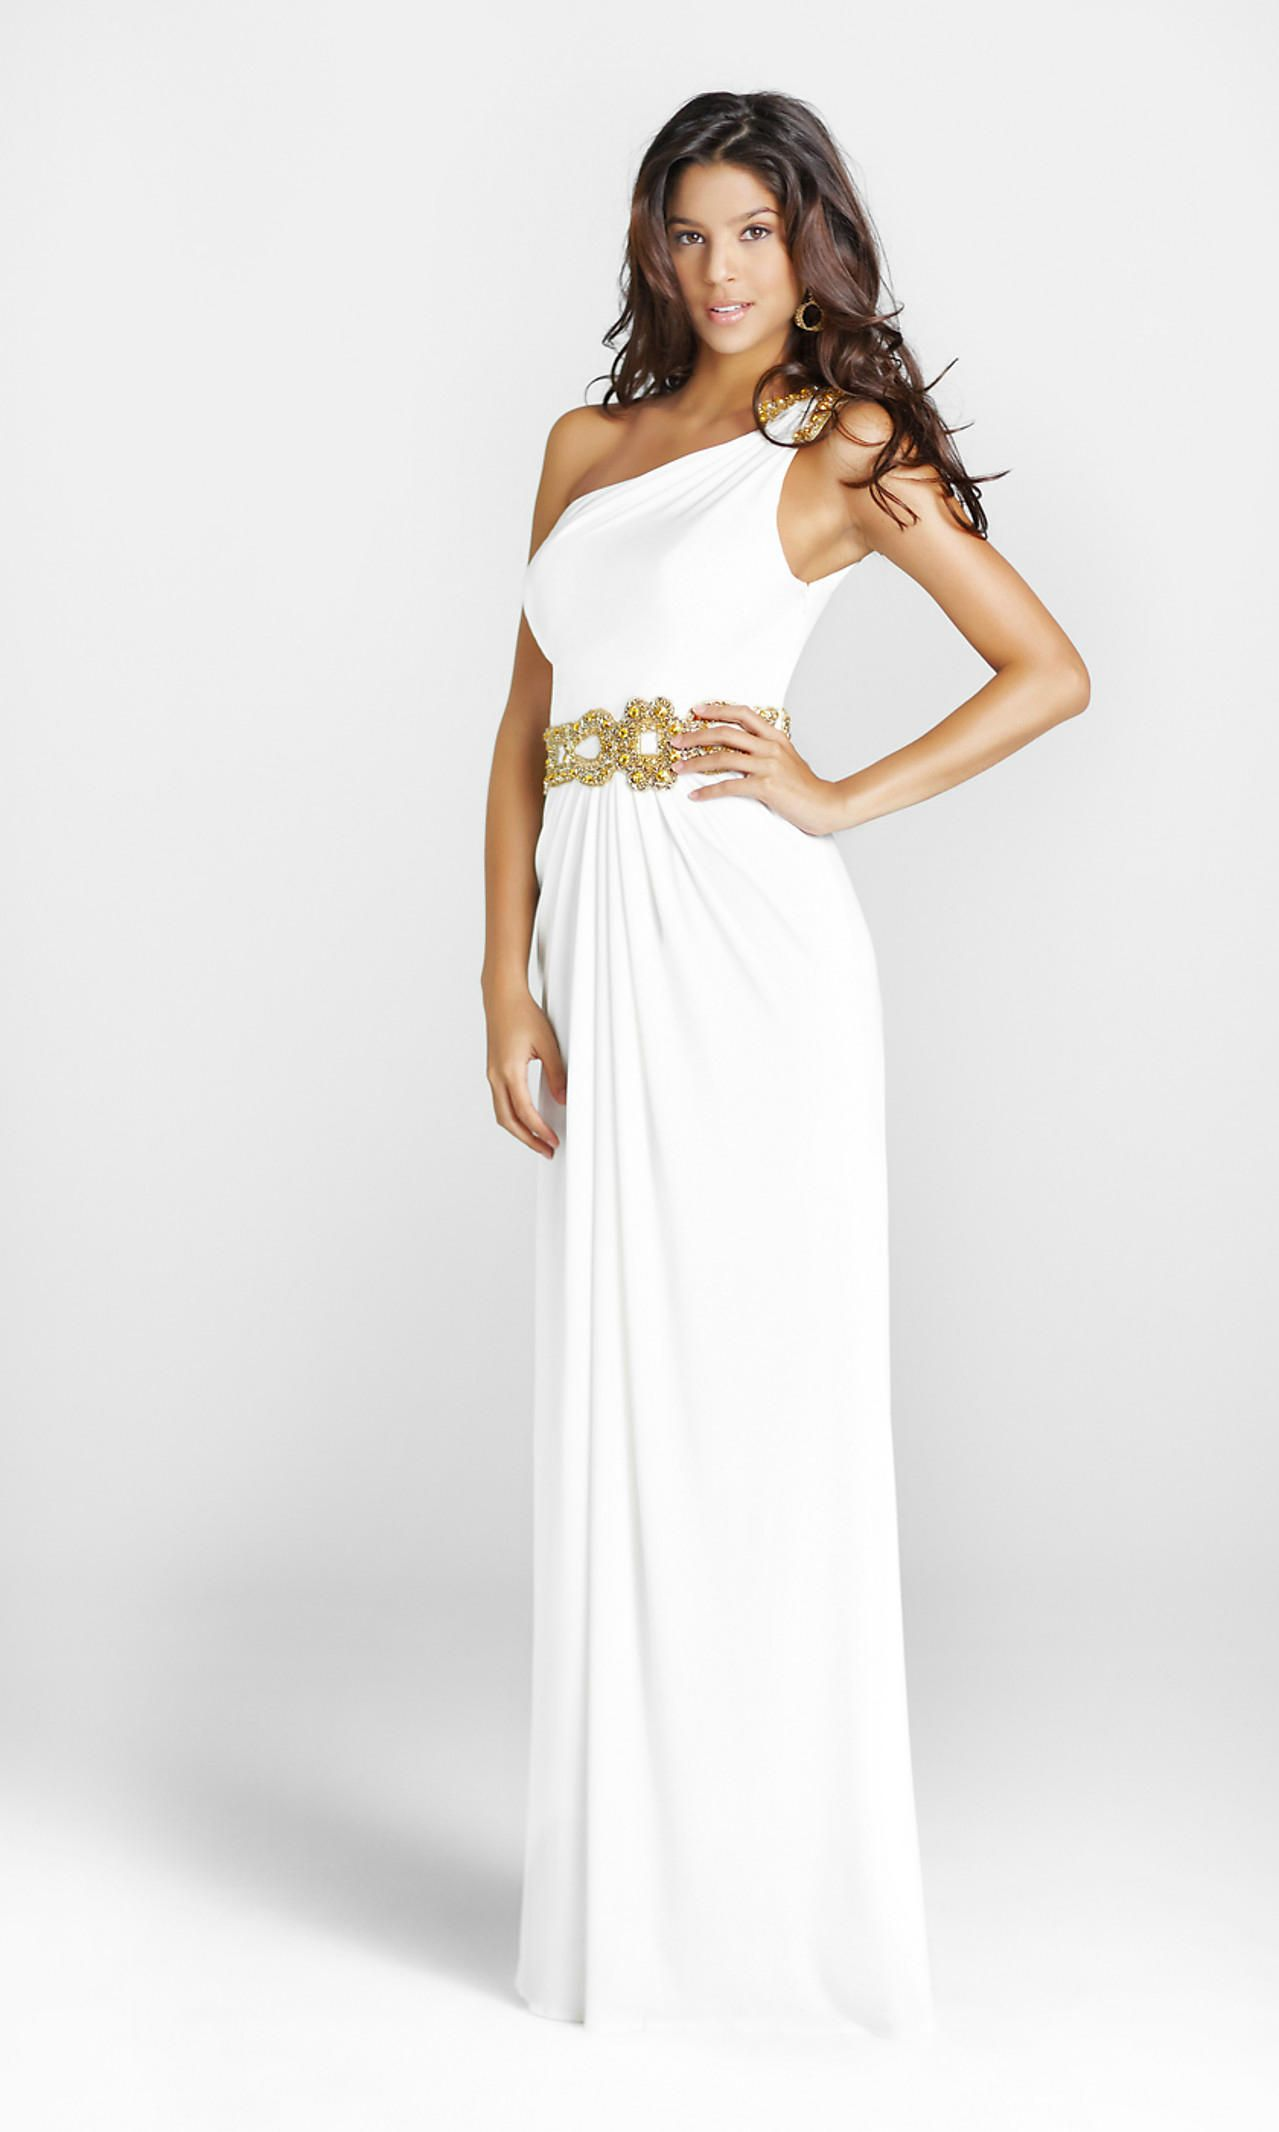 17  images about One Shoulder Prom Dresses on Pinterest  Prom ...